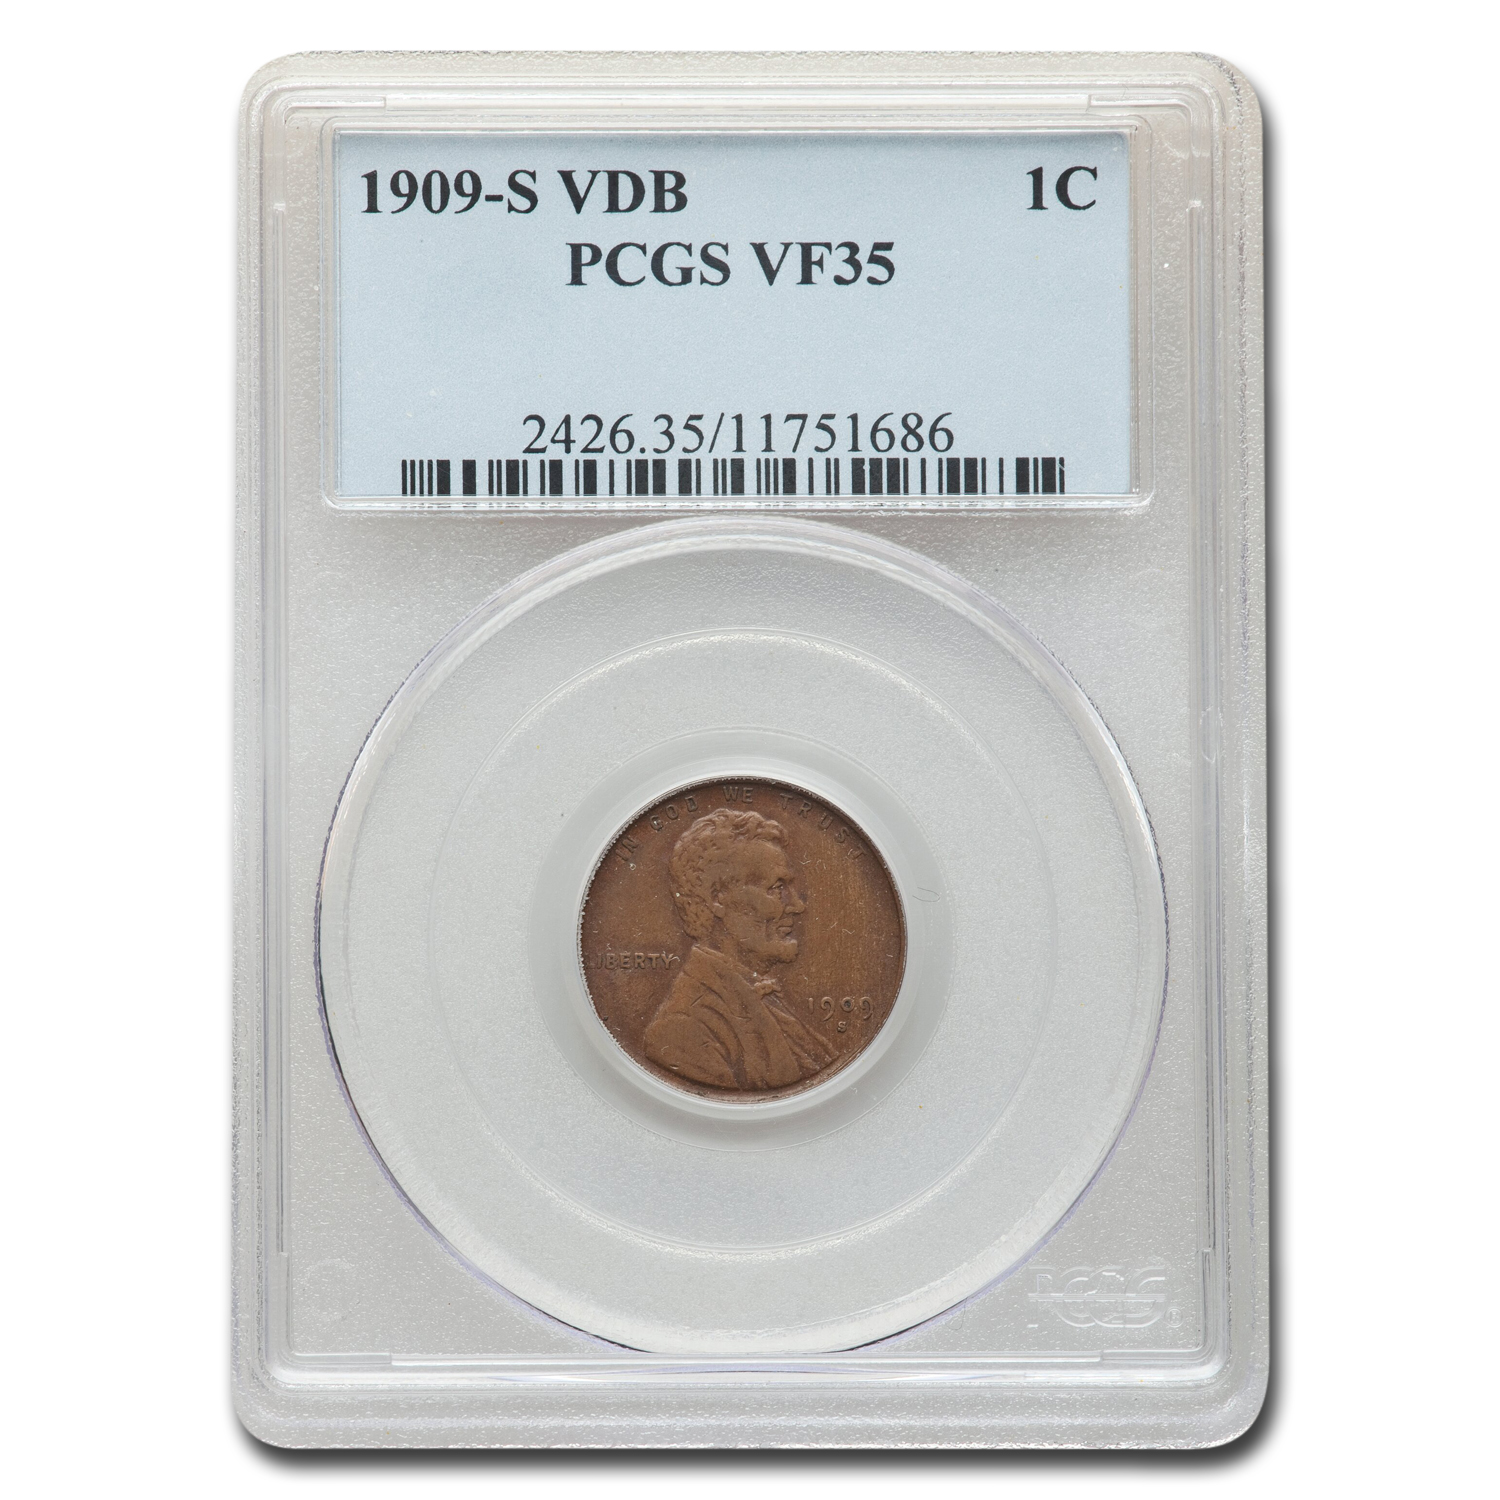 1909-S VDB Lincoln Cent VF-35 PCGS